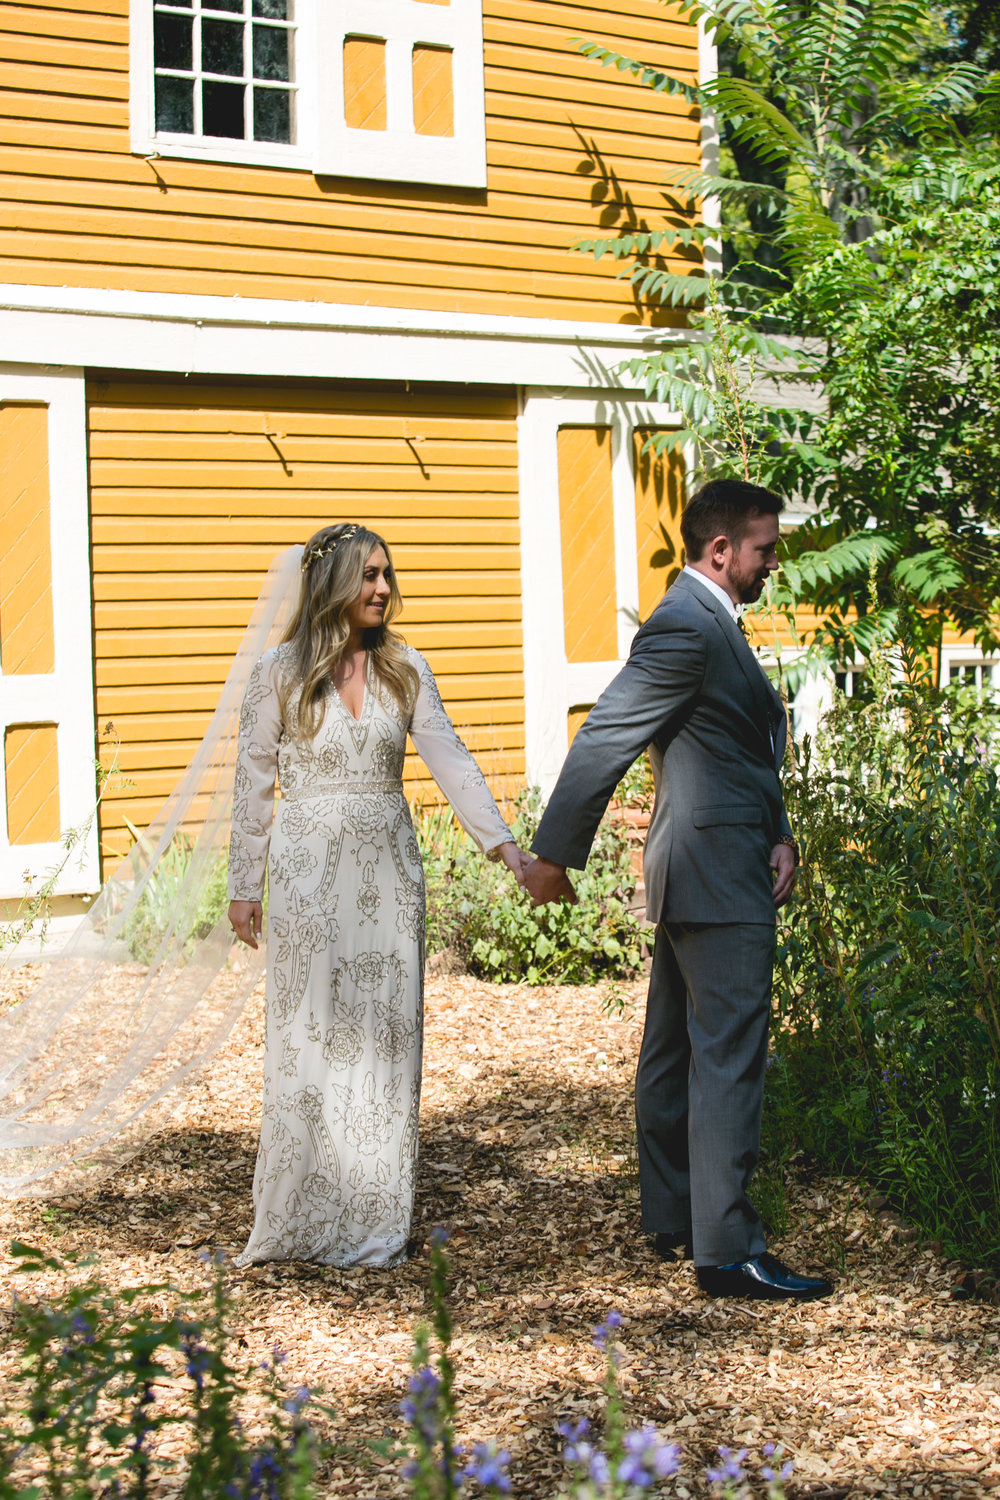 A Historic Waterloo Village Vintage Chic Wedding by Swiger Photography, featuring fall colors, vibrant details and beautiful authentic love. Shot by owner Amanda Swiger, national known lesbian photographer.